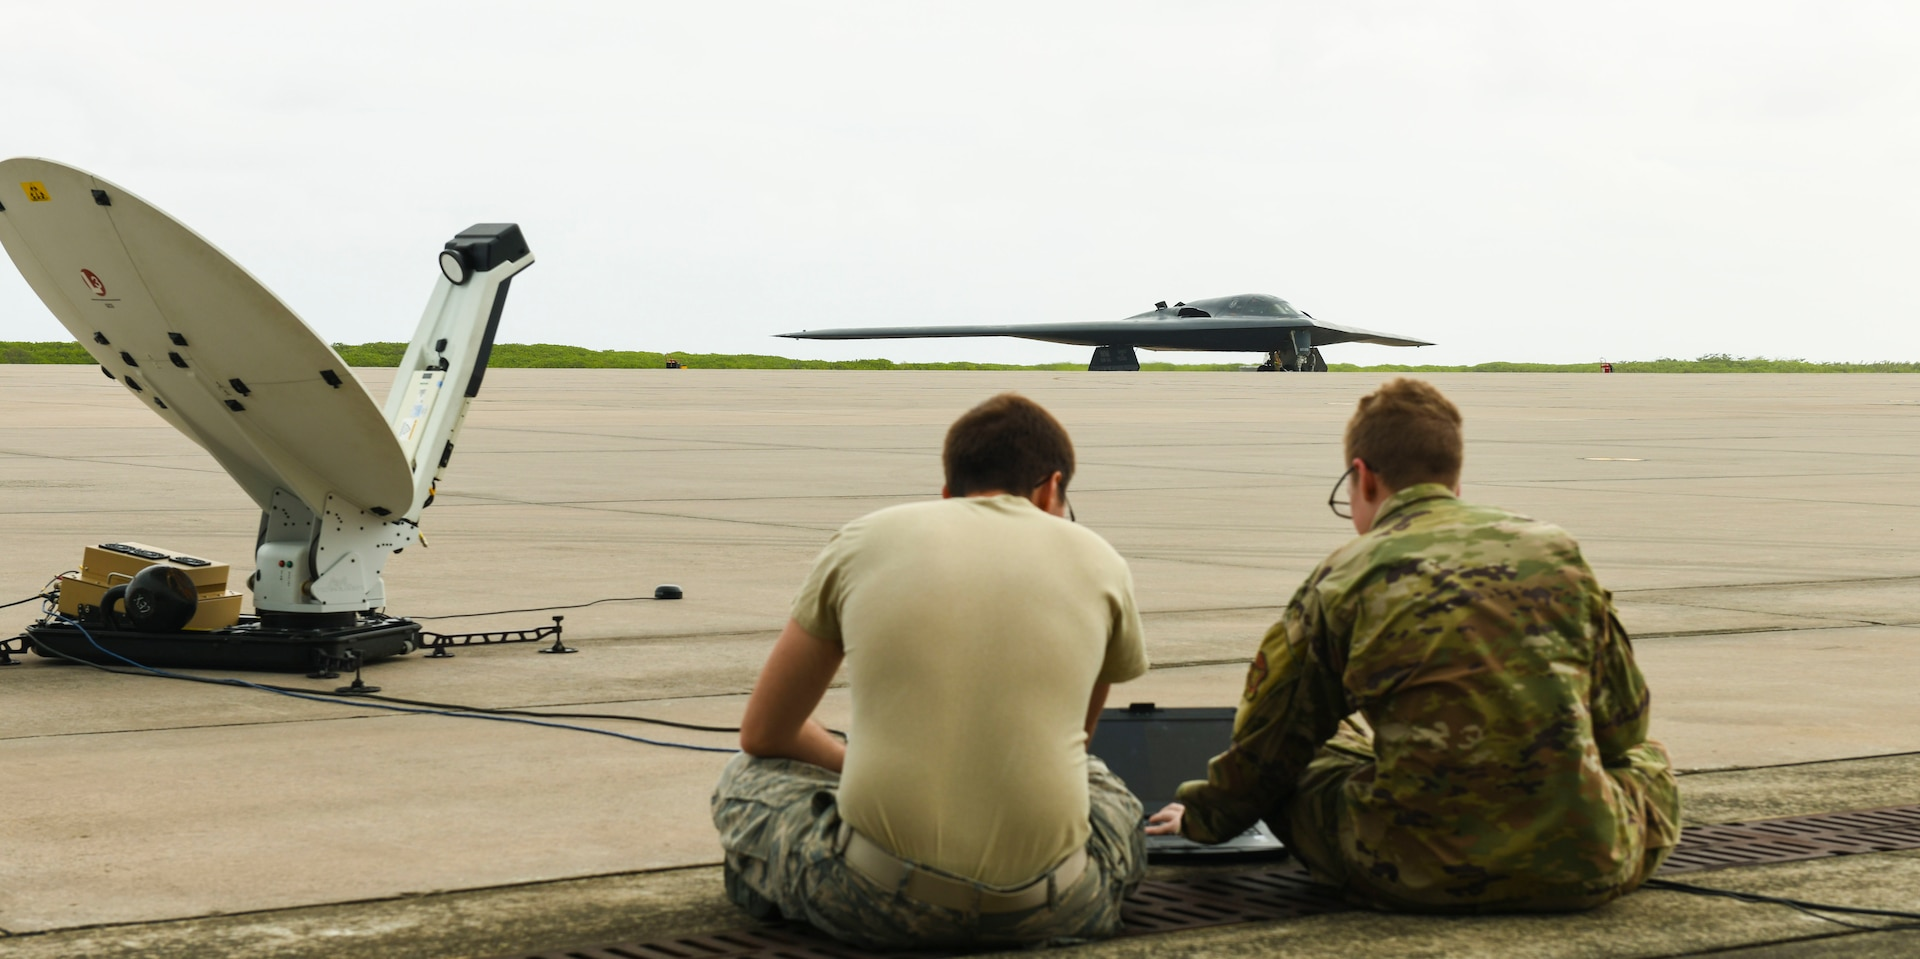 393rd Expeditionary Bomb Squadron paves way for Dynamic Force Employment